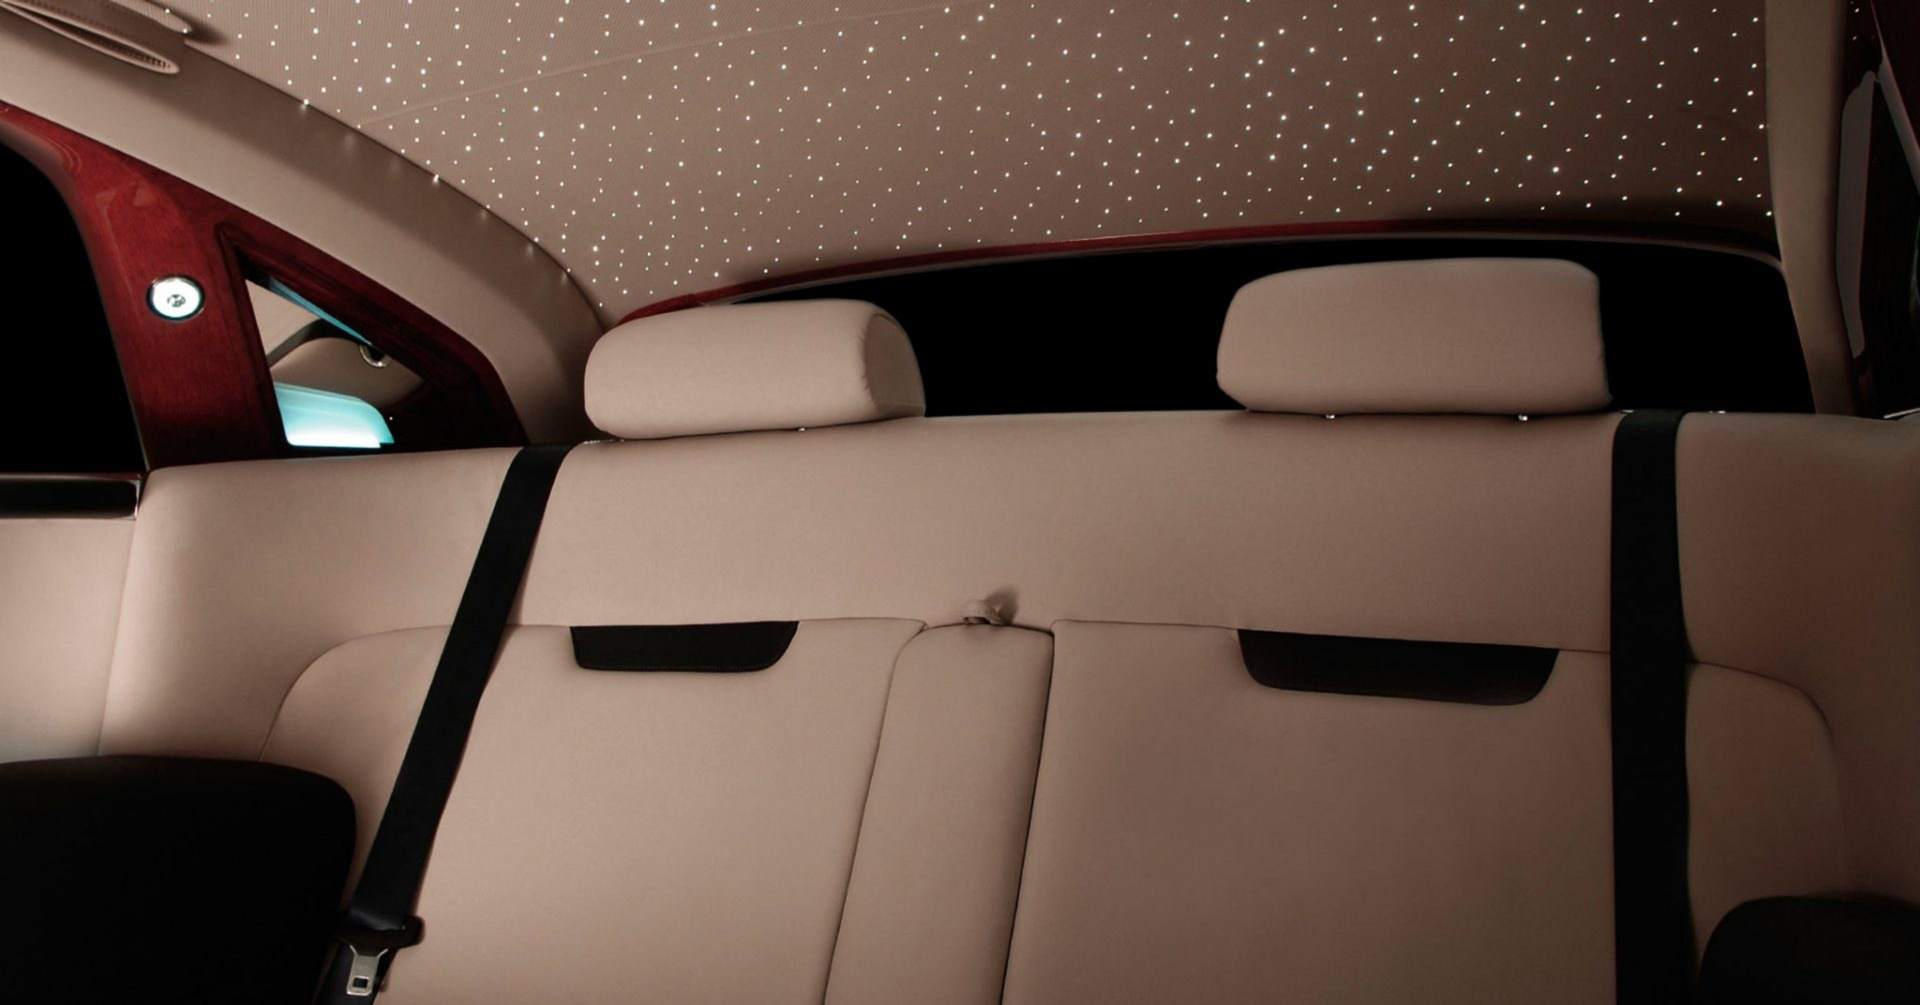 Interior shot of a prototype electric vehicle by Rolls-Royce motor cars, showcasing the starlight headliner.